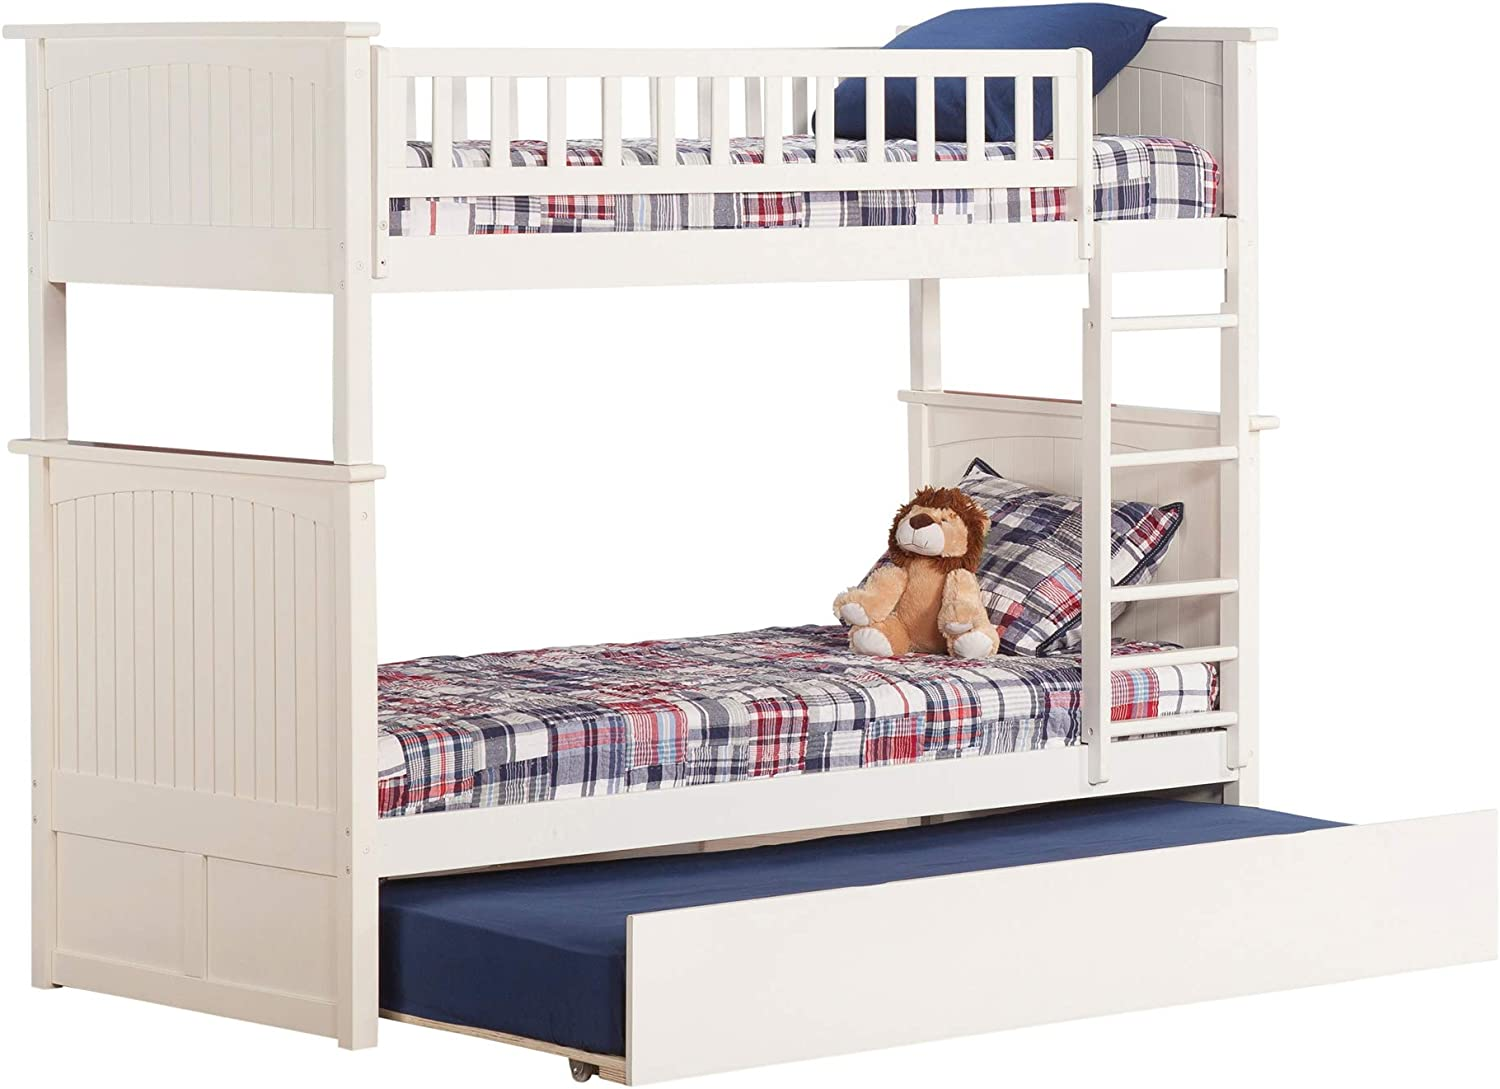 Atlantic Furniture Nantucket Bunk Bed Full Over Full with Twin Size Urban Trundle Bed in Walnut White/Twin Over Twin